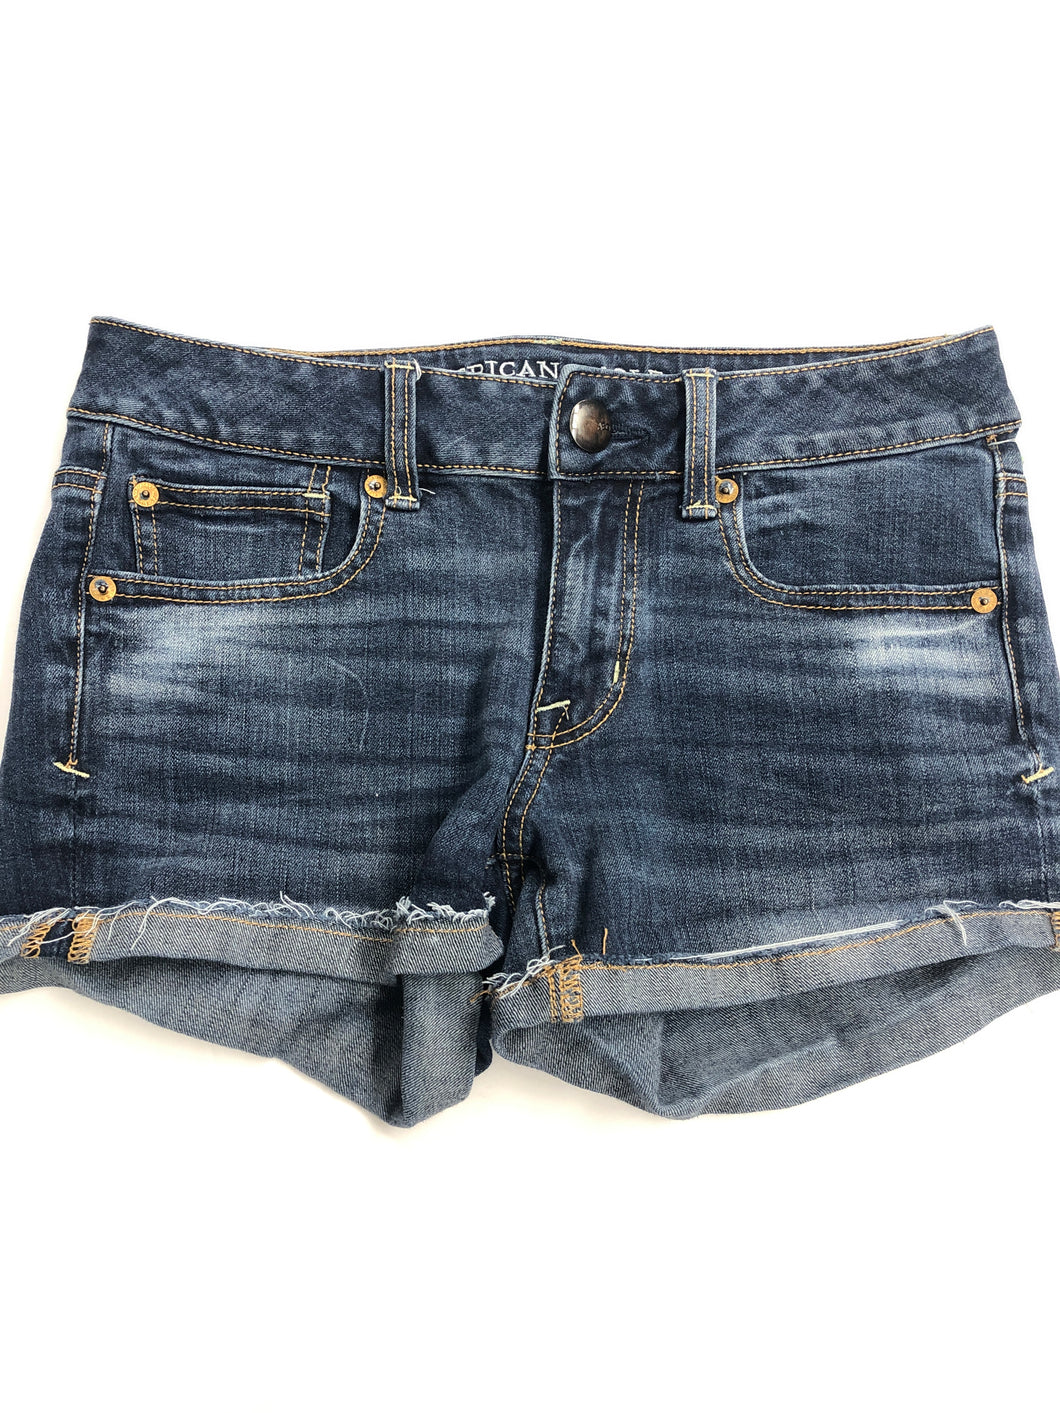 American Eagle Womens Shorts Size 2